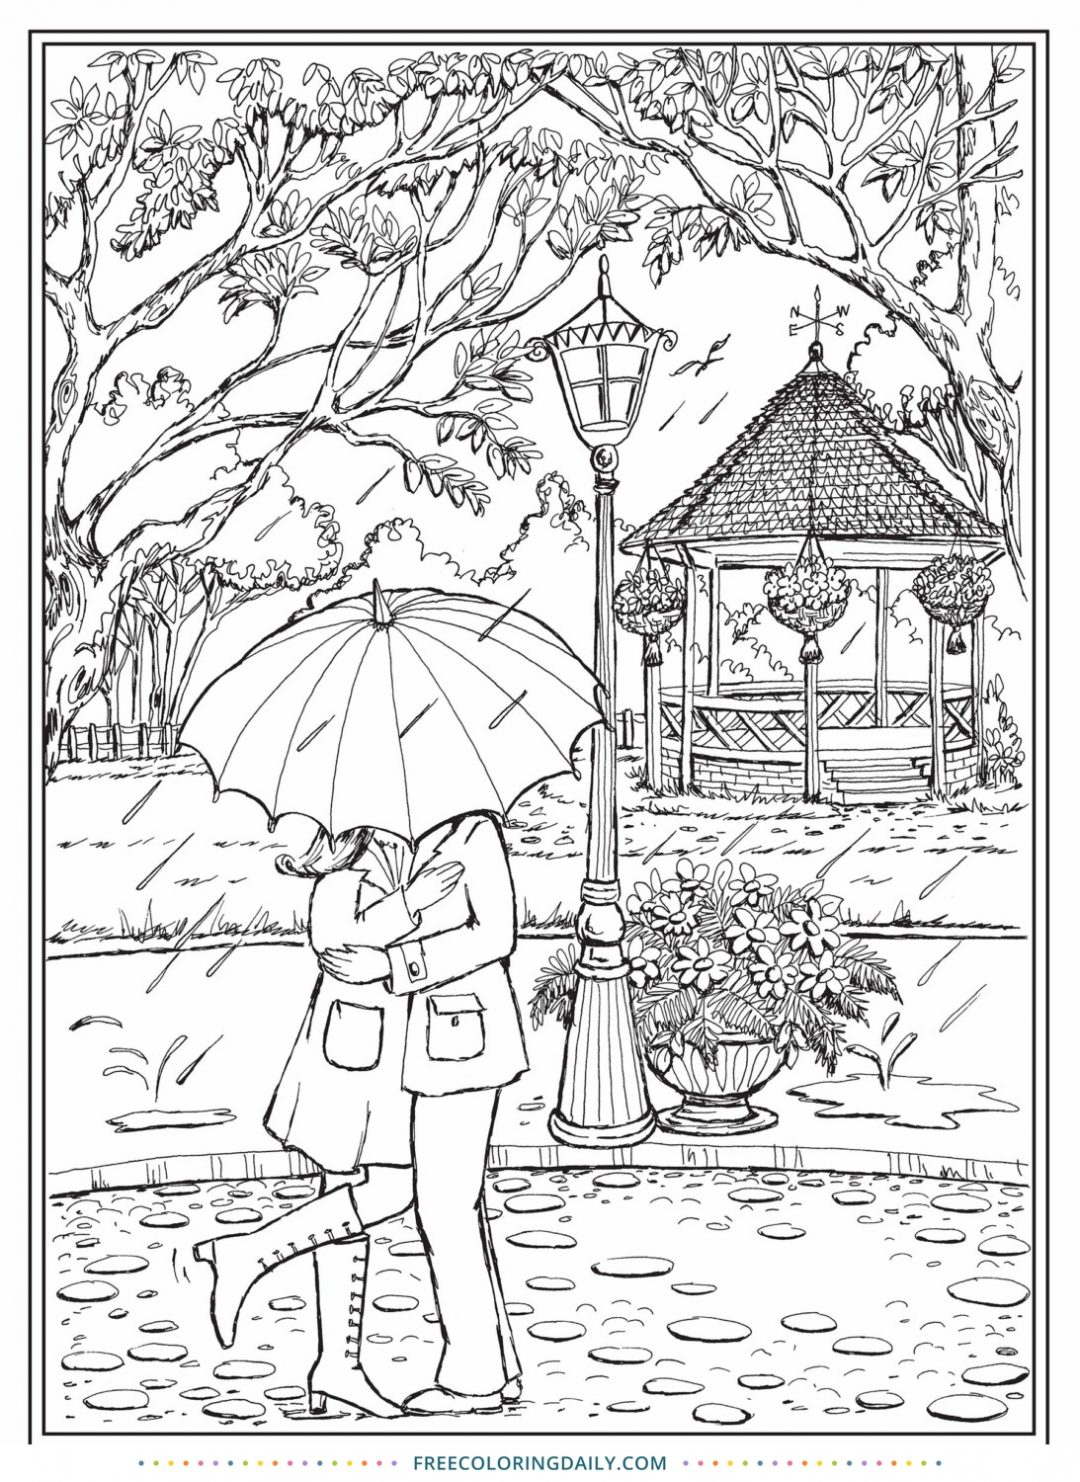 Free Romance in the Rain Coloring Page